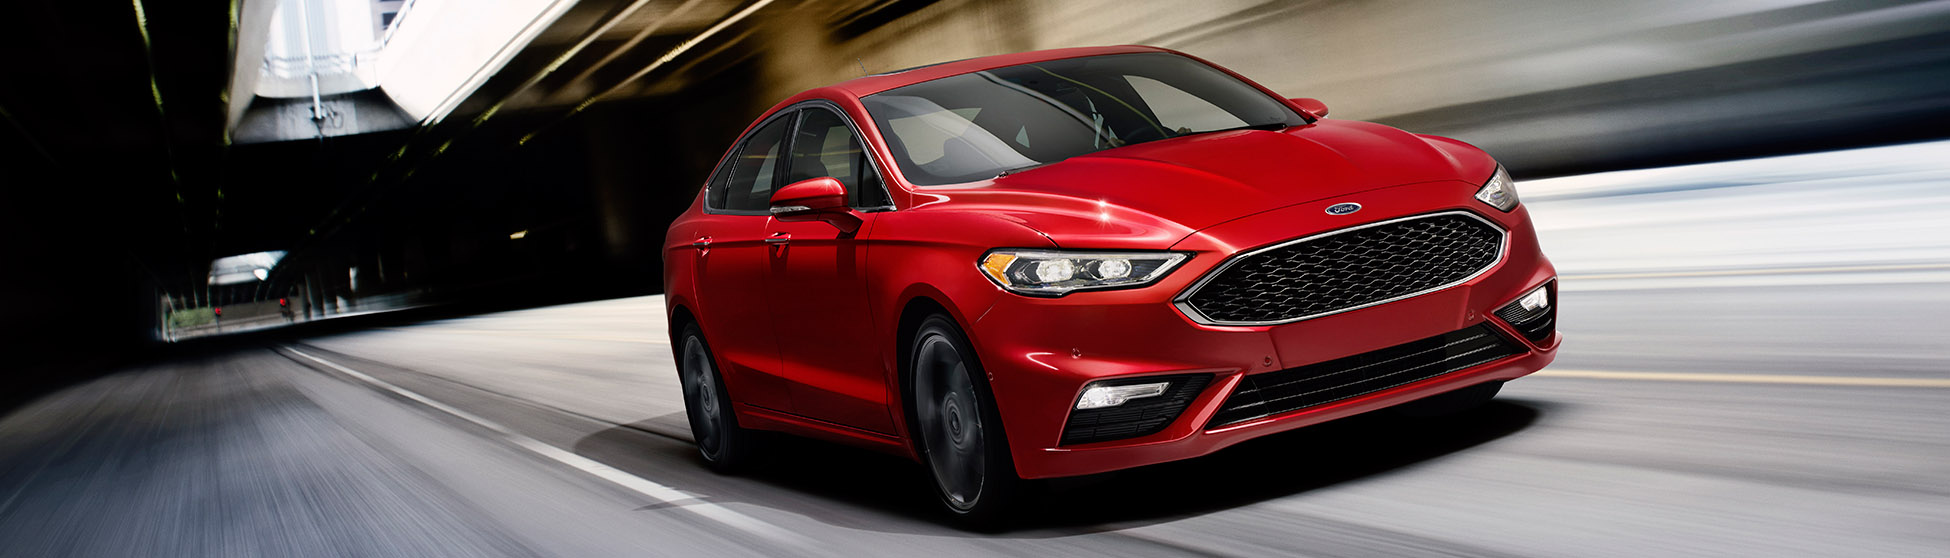 mathews ford new used cars ford dealer columbus central oh. Cars Review. Best American Auto & Cars Review